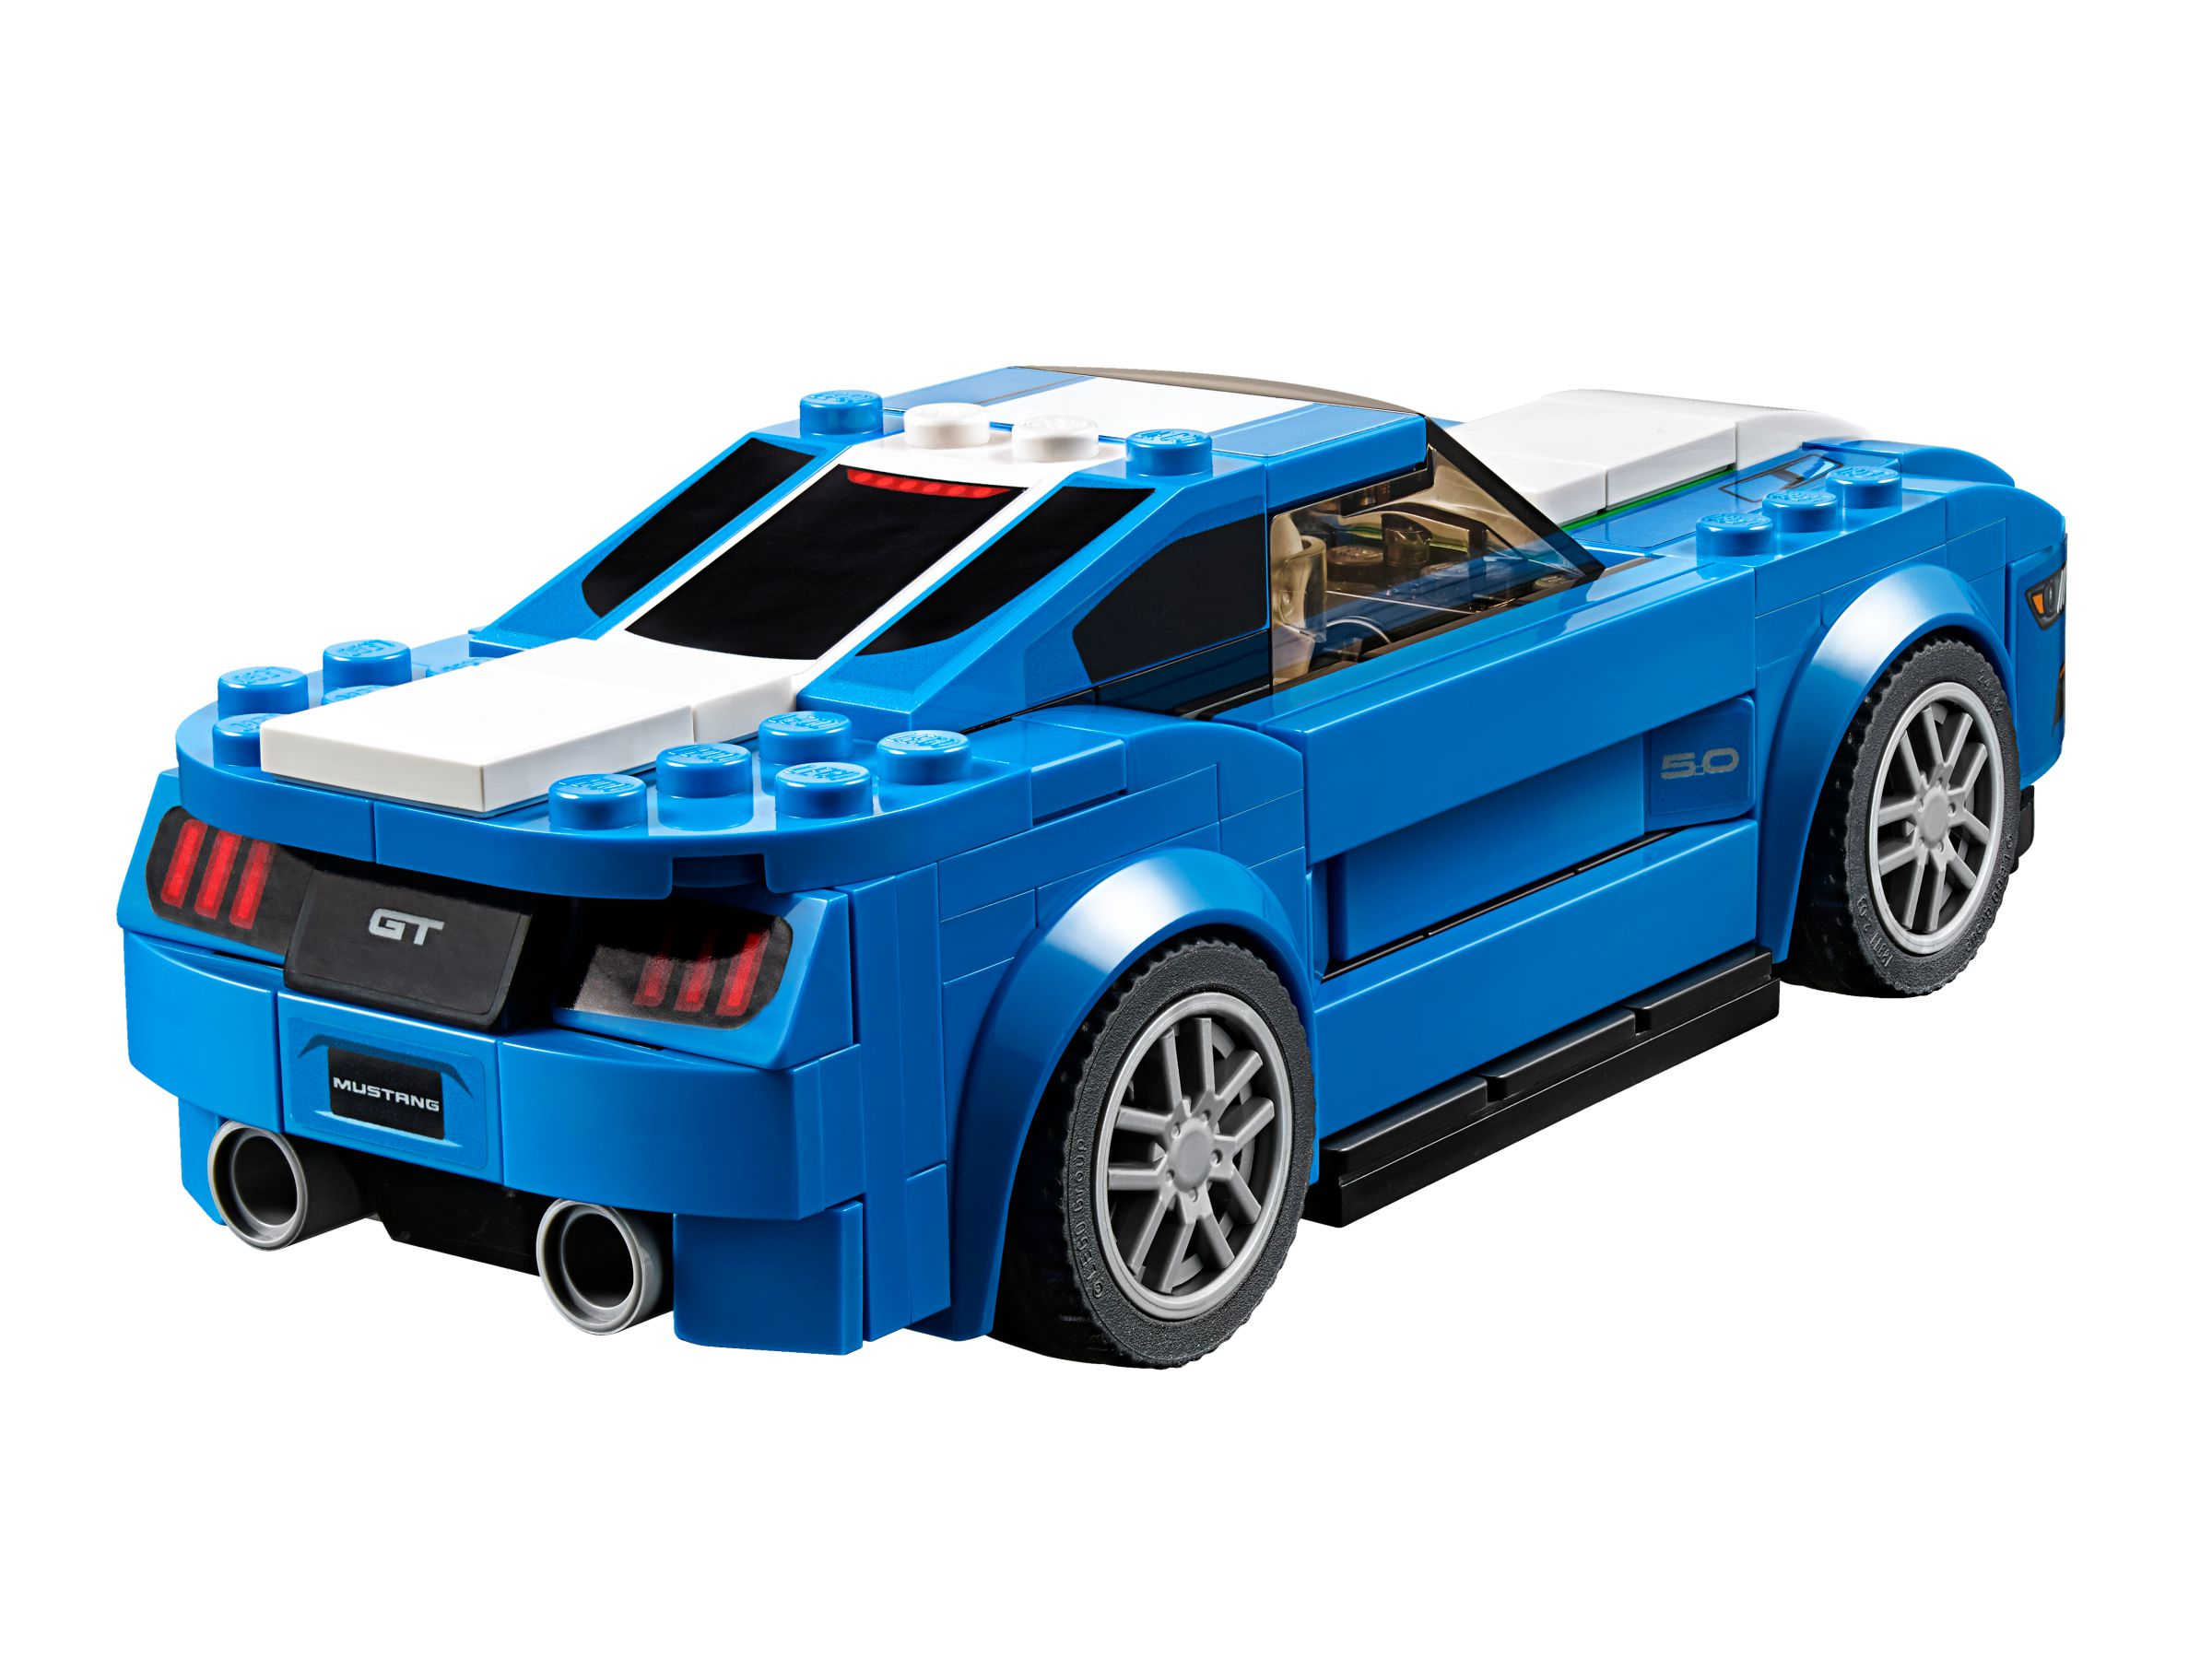 LEGO Speed Champions 75871 Ford Mustang GT LEGO_75871_alt3.jpg